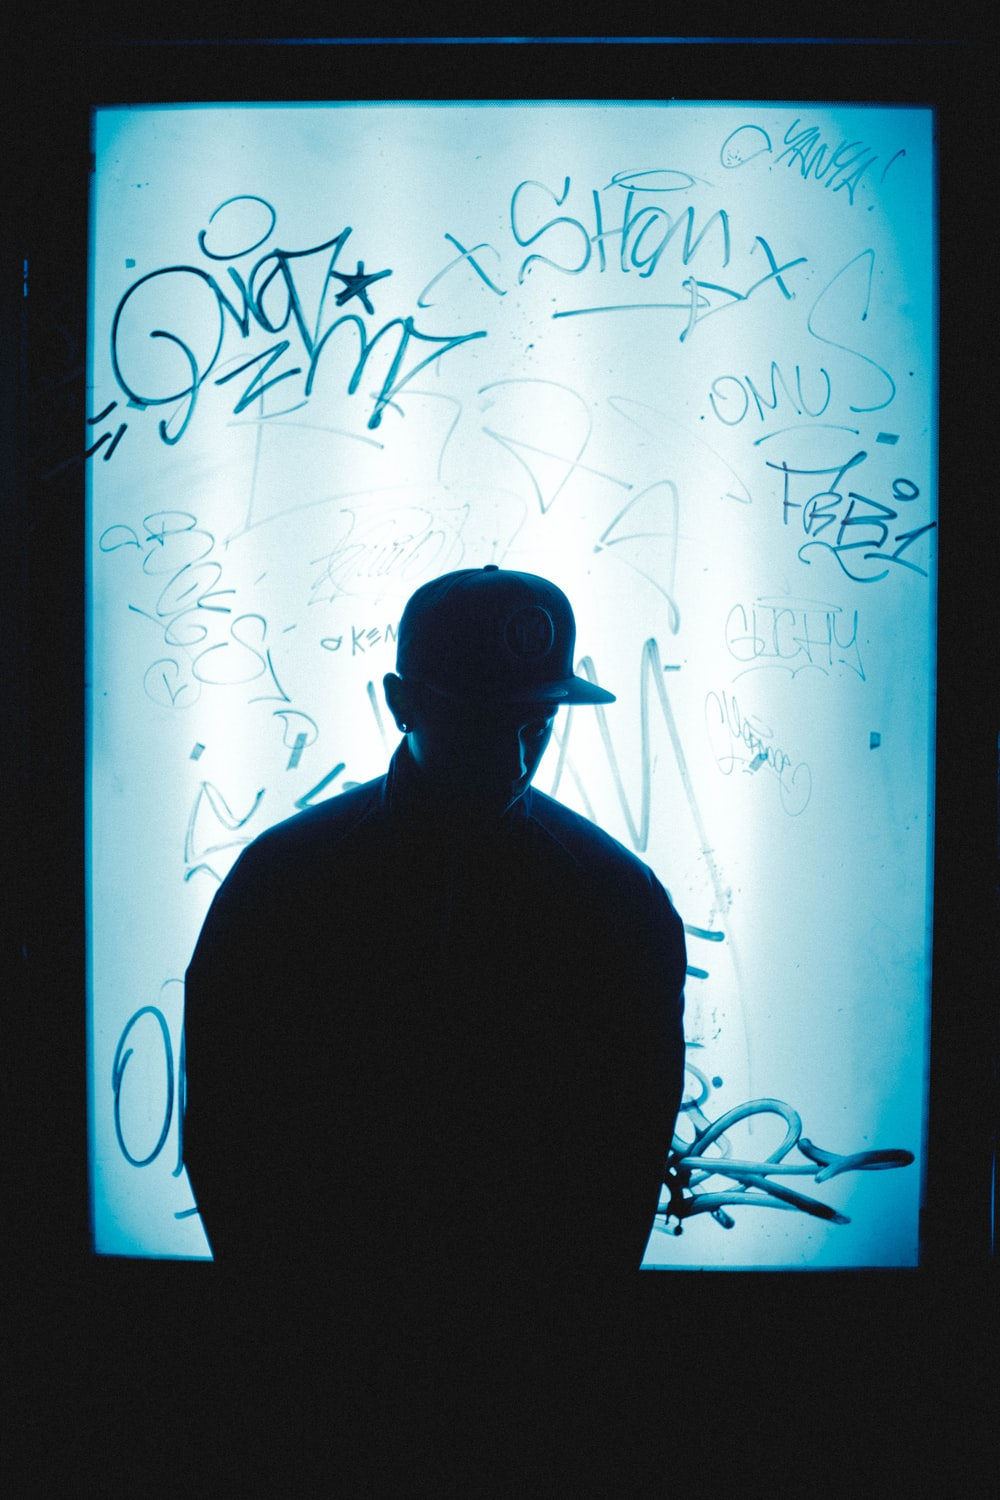 silhouette of man in front of signed poster